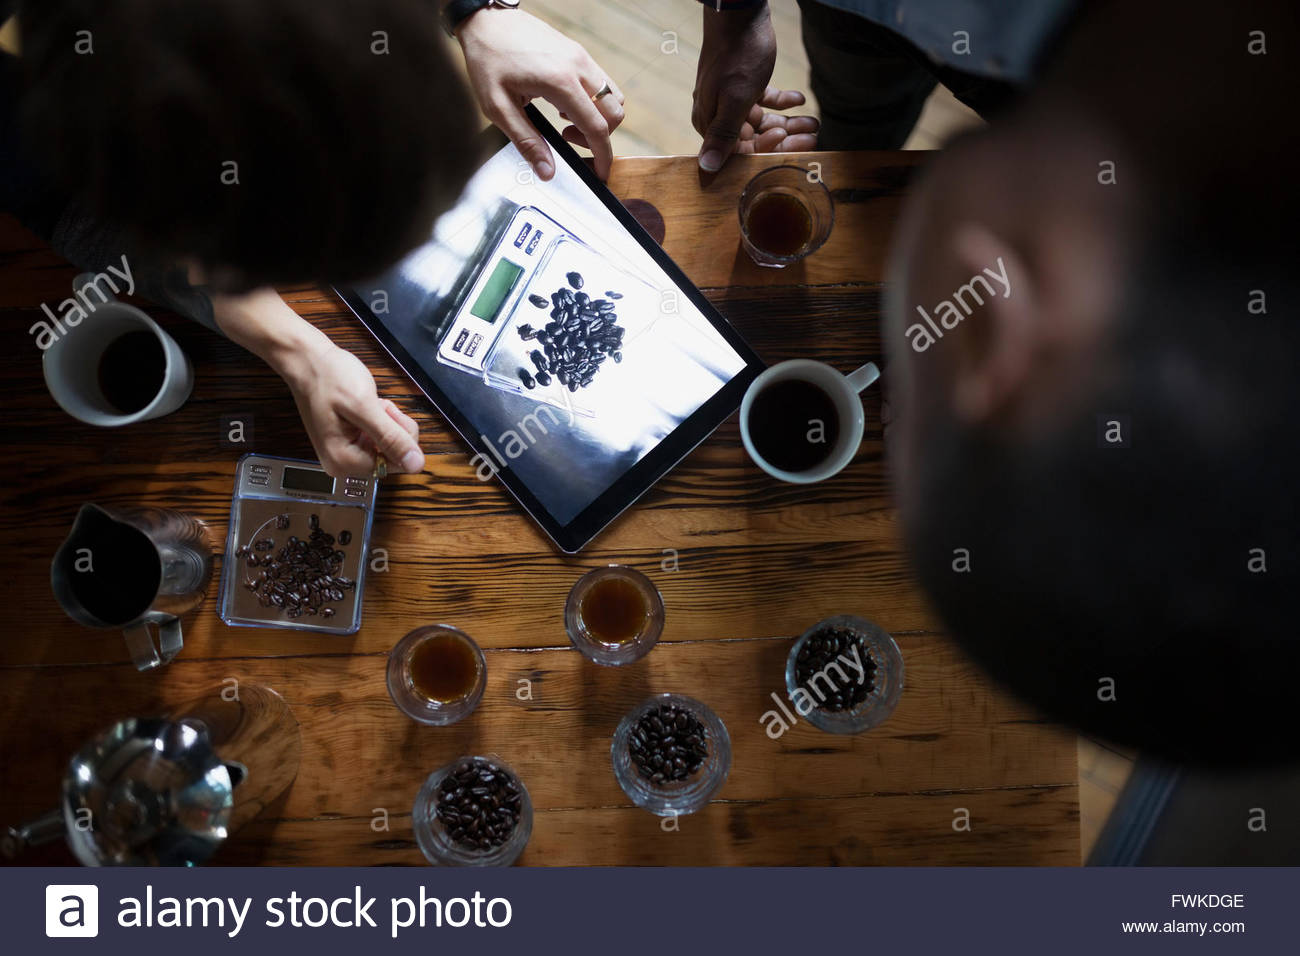 Overhead entrepreneurial coffee roasters using digital tablet - Stock Image